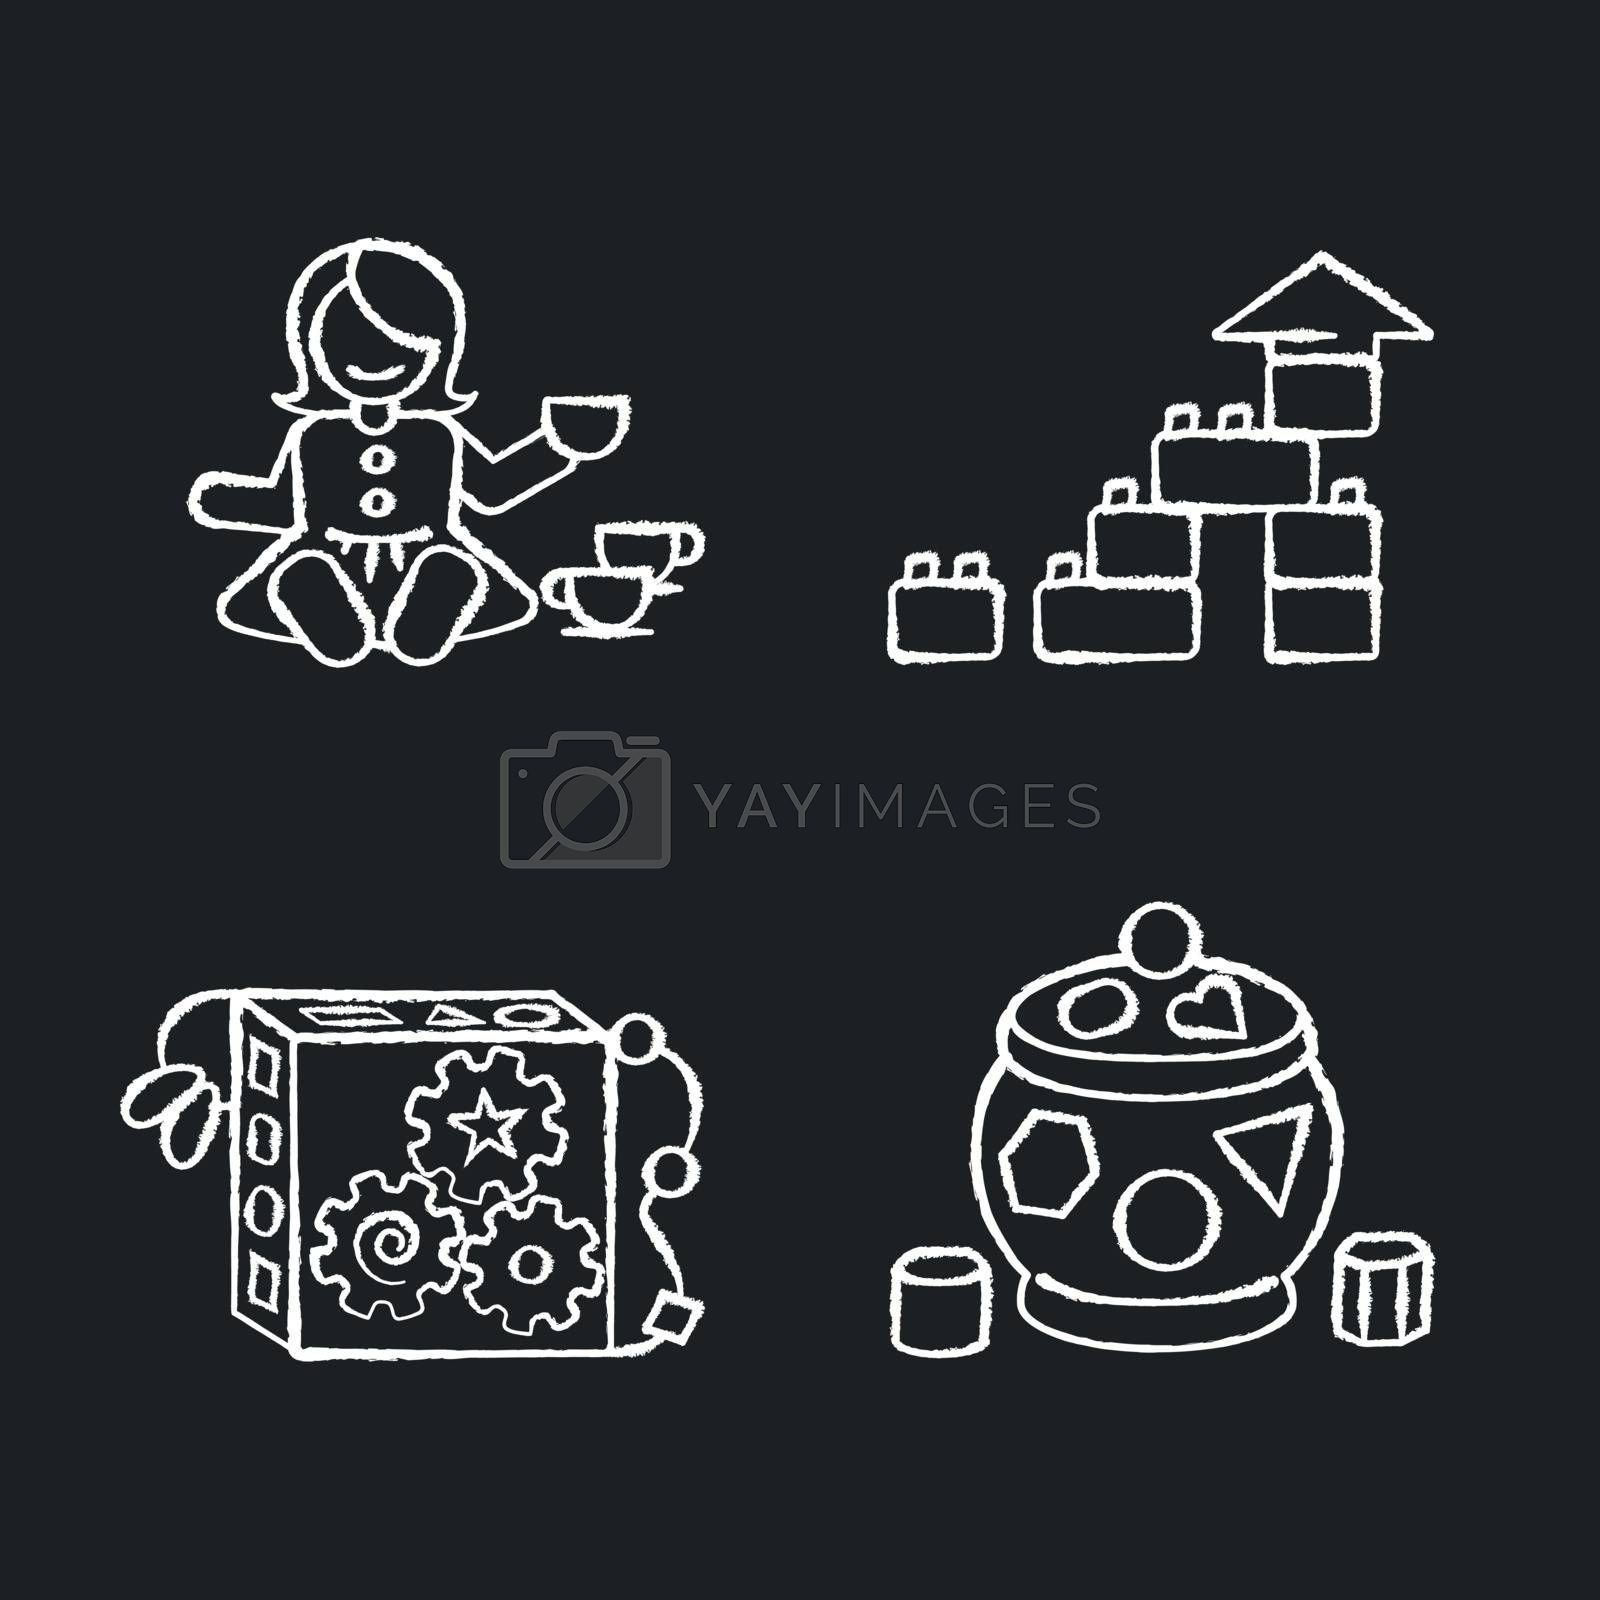 Sensory toys for toddlers chalk white icons set on black background. Baby doll with tea set. Educational toys for children early development. Isolated vector chalkboard illustrations